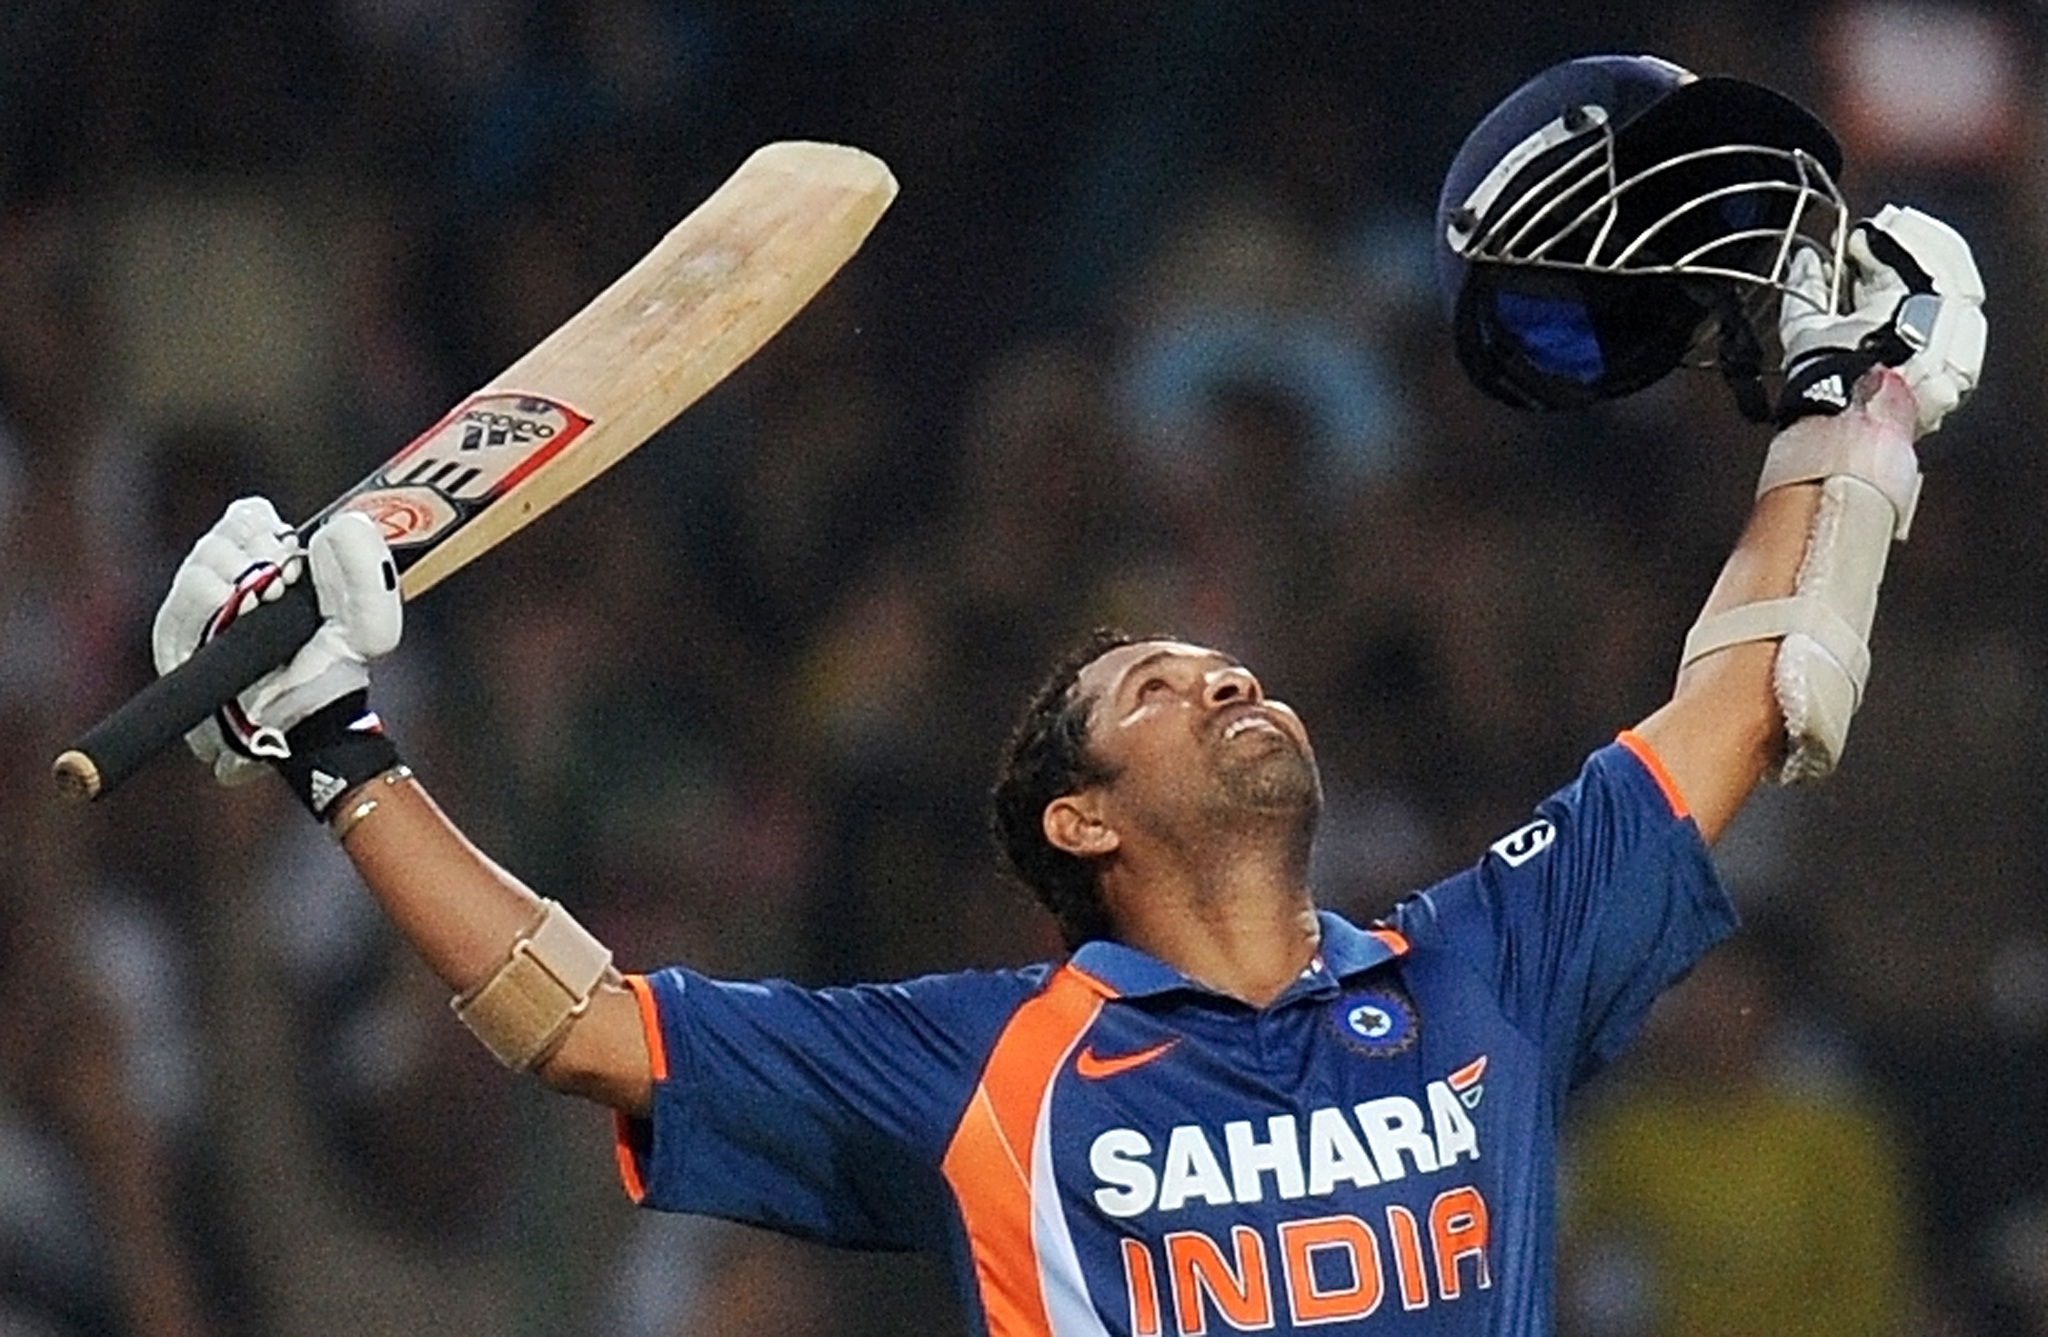 sachin tendulkar wallpapers high resolution and quality download